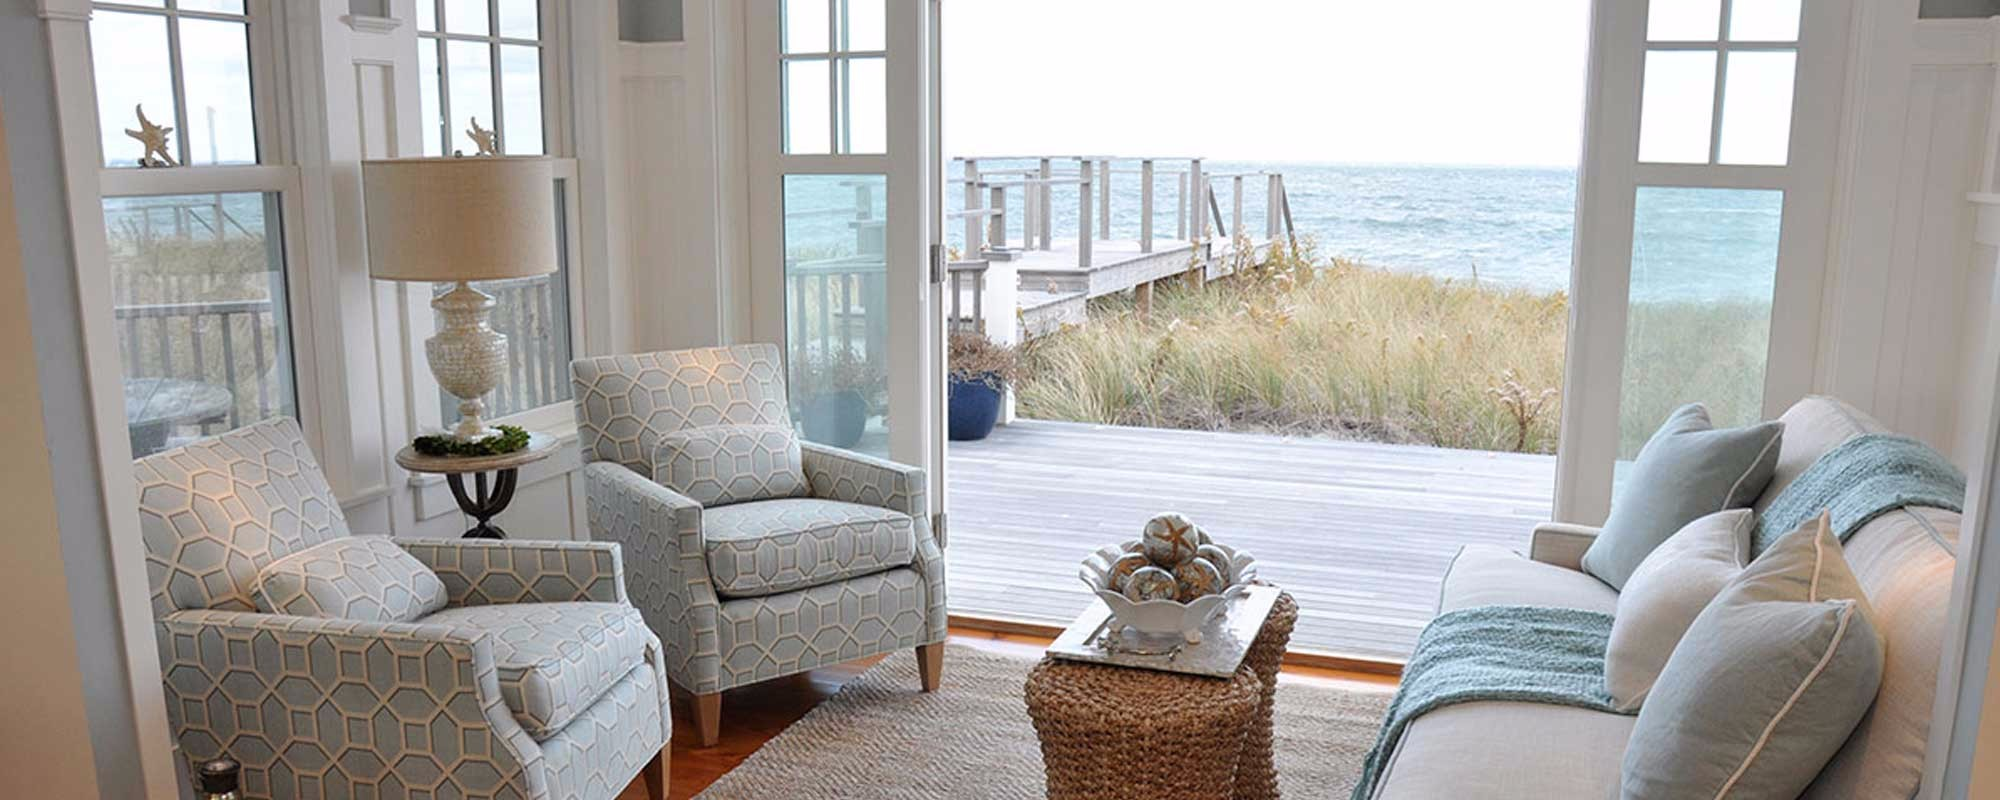 Interior design cape cod ma casabella interiors for At home interior design